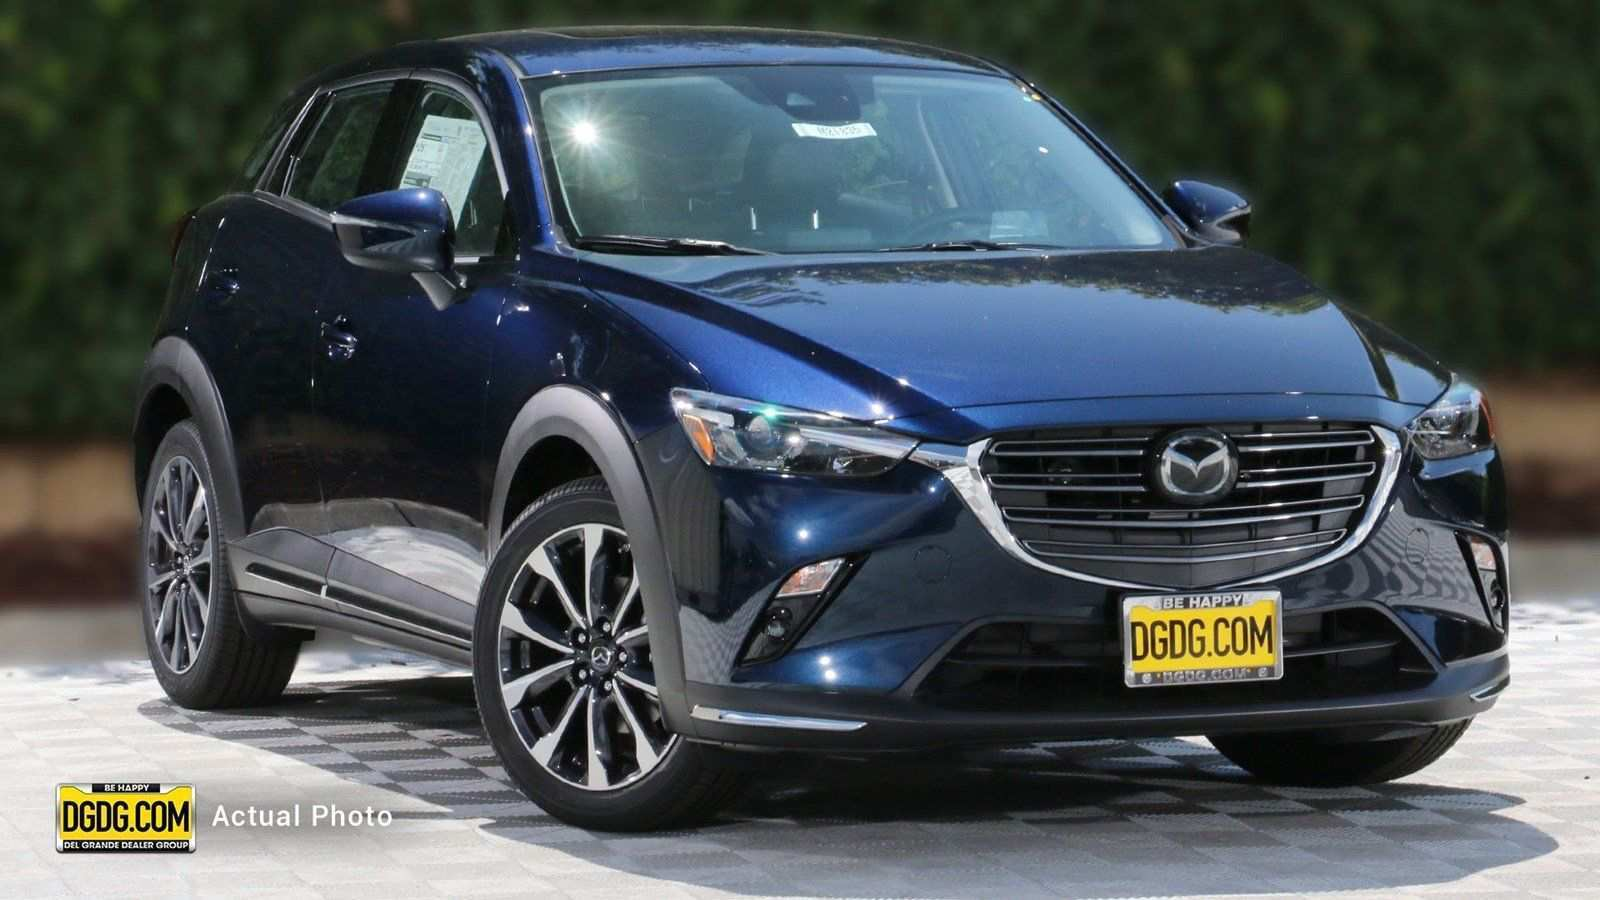 23 Gallery of Mazdas New Engine For 2019 Review Specs And Release Date Release for Mazdas New Engine For 2019 Review Specs And Release Date